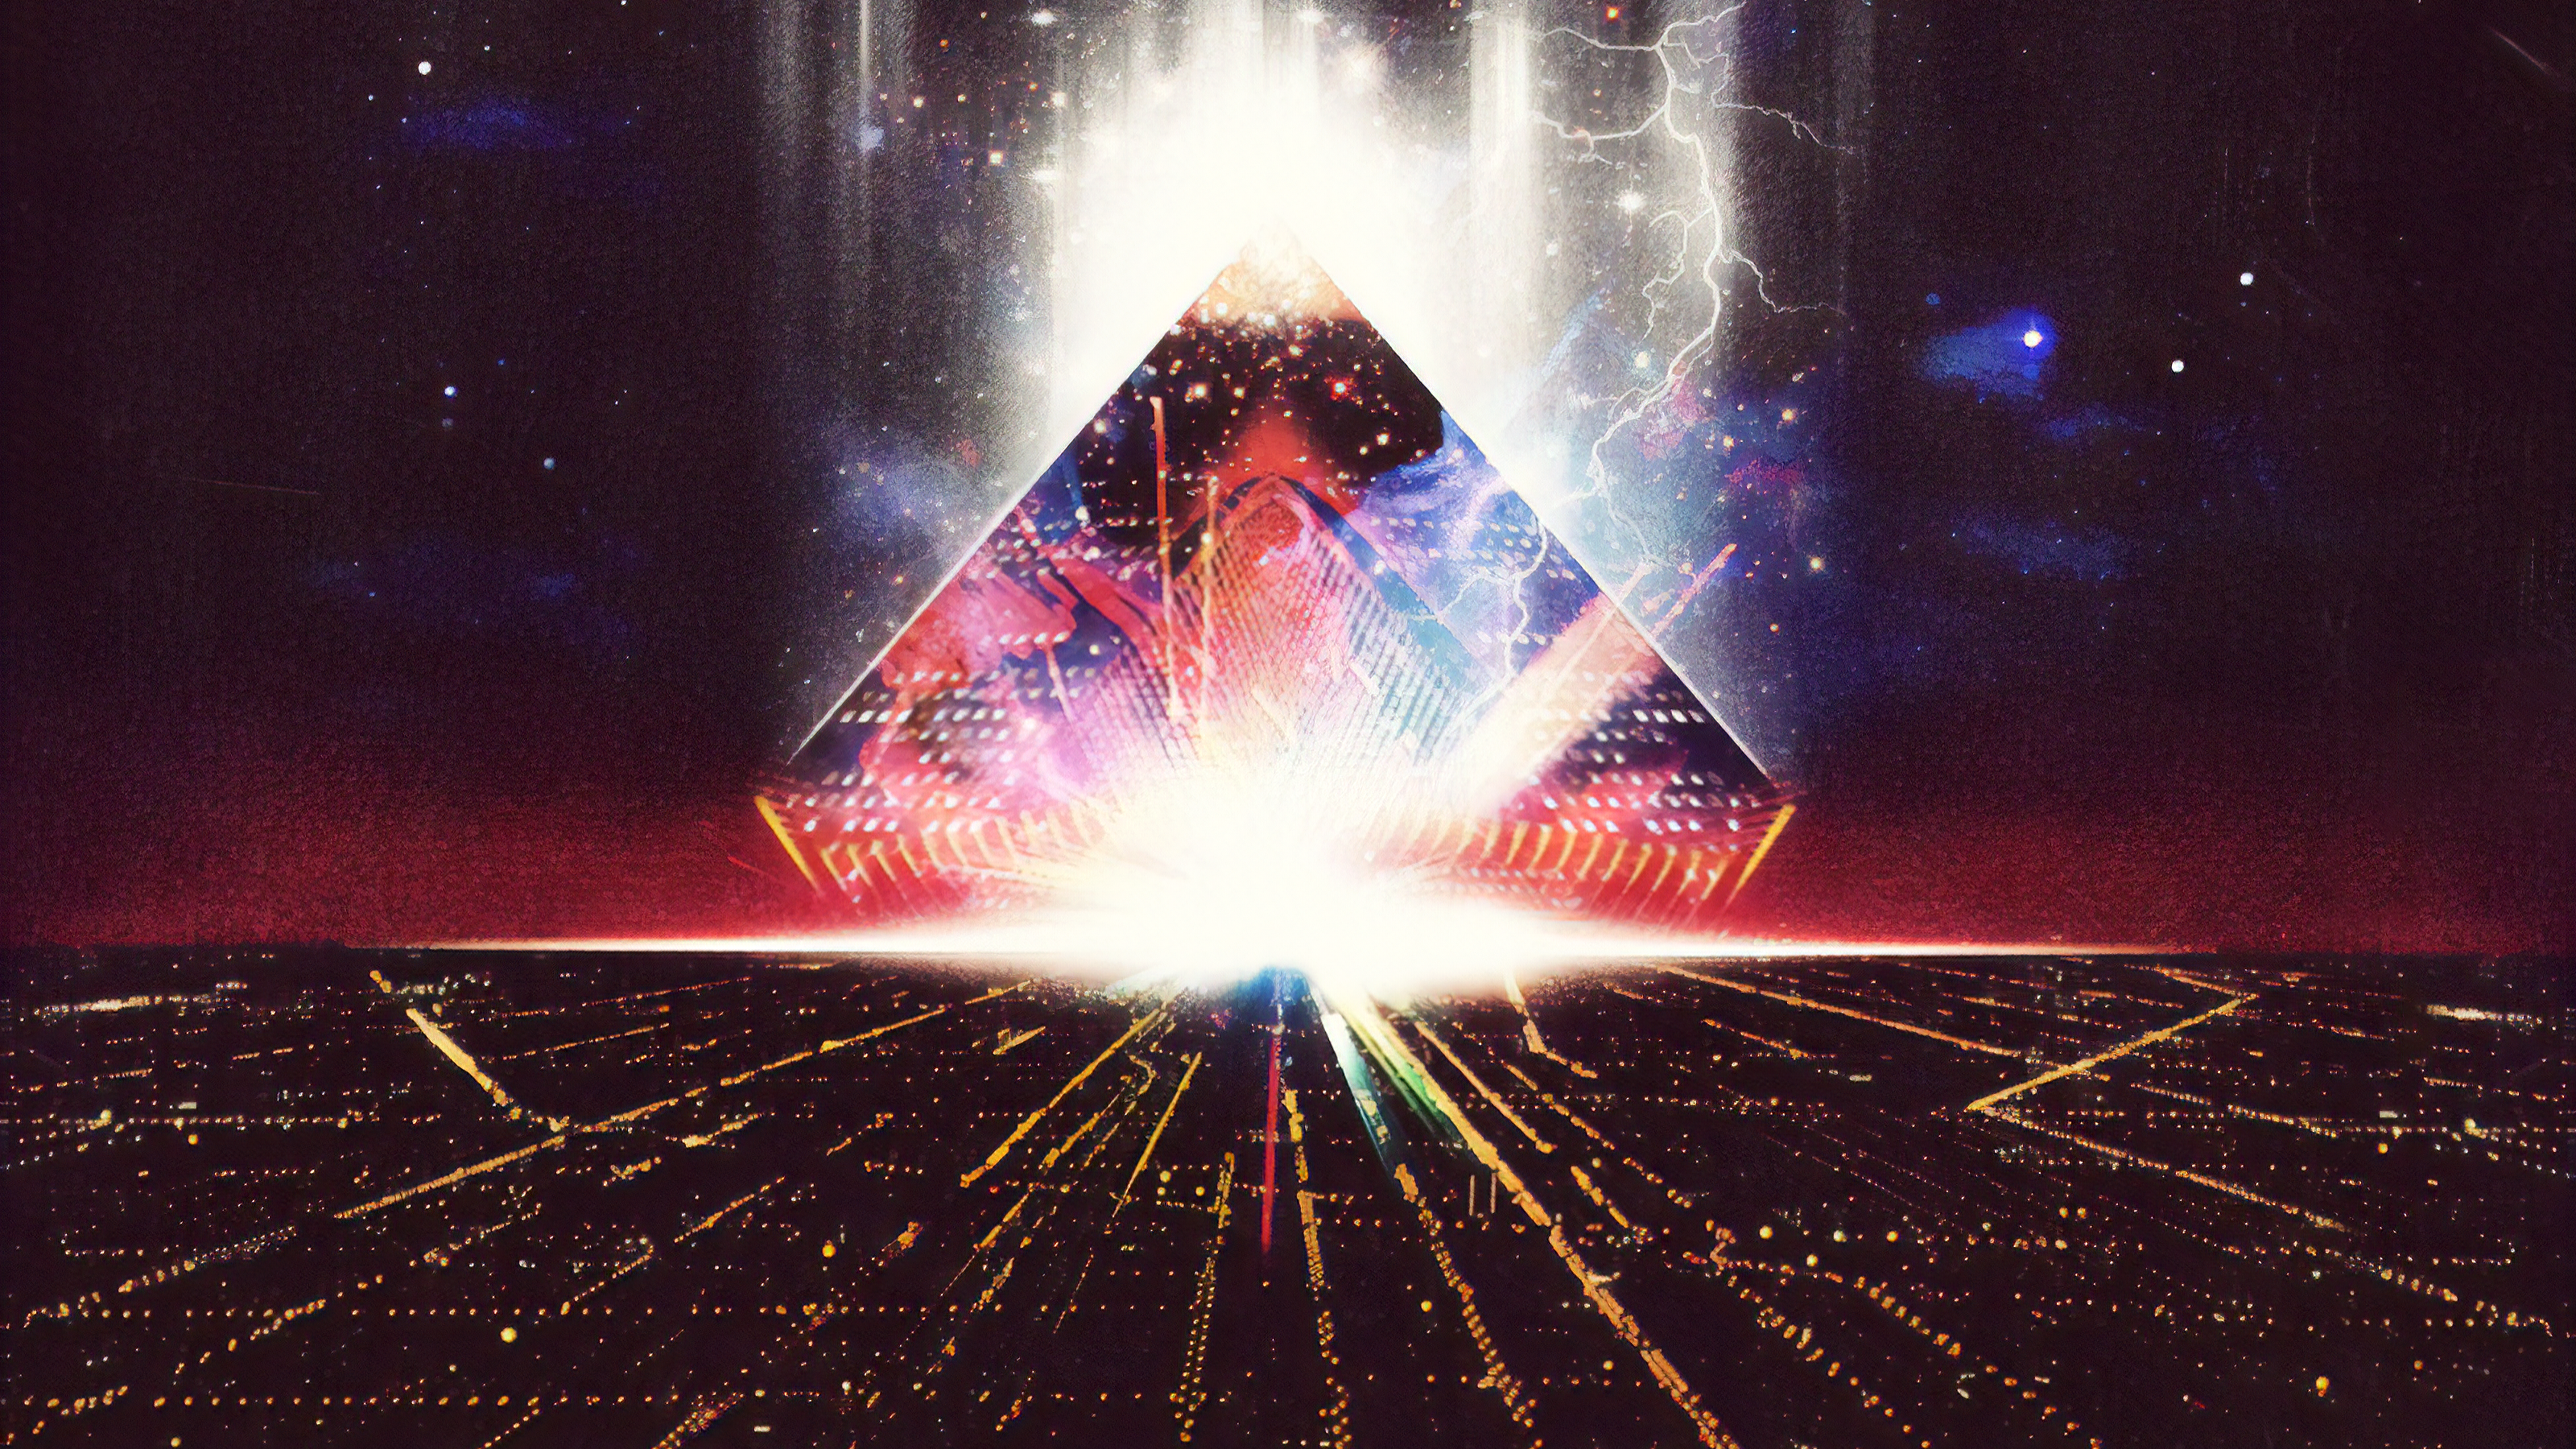 Compilation Prism by SignalStarr [3200x1800] Music IndieArtist 3200x1800